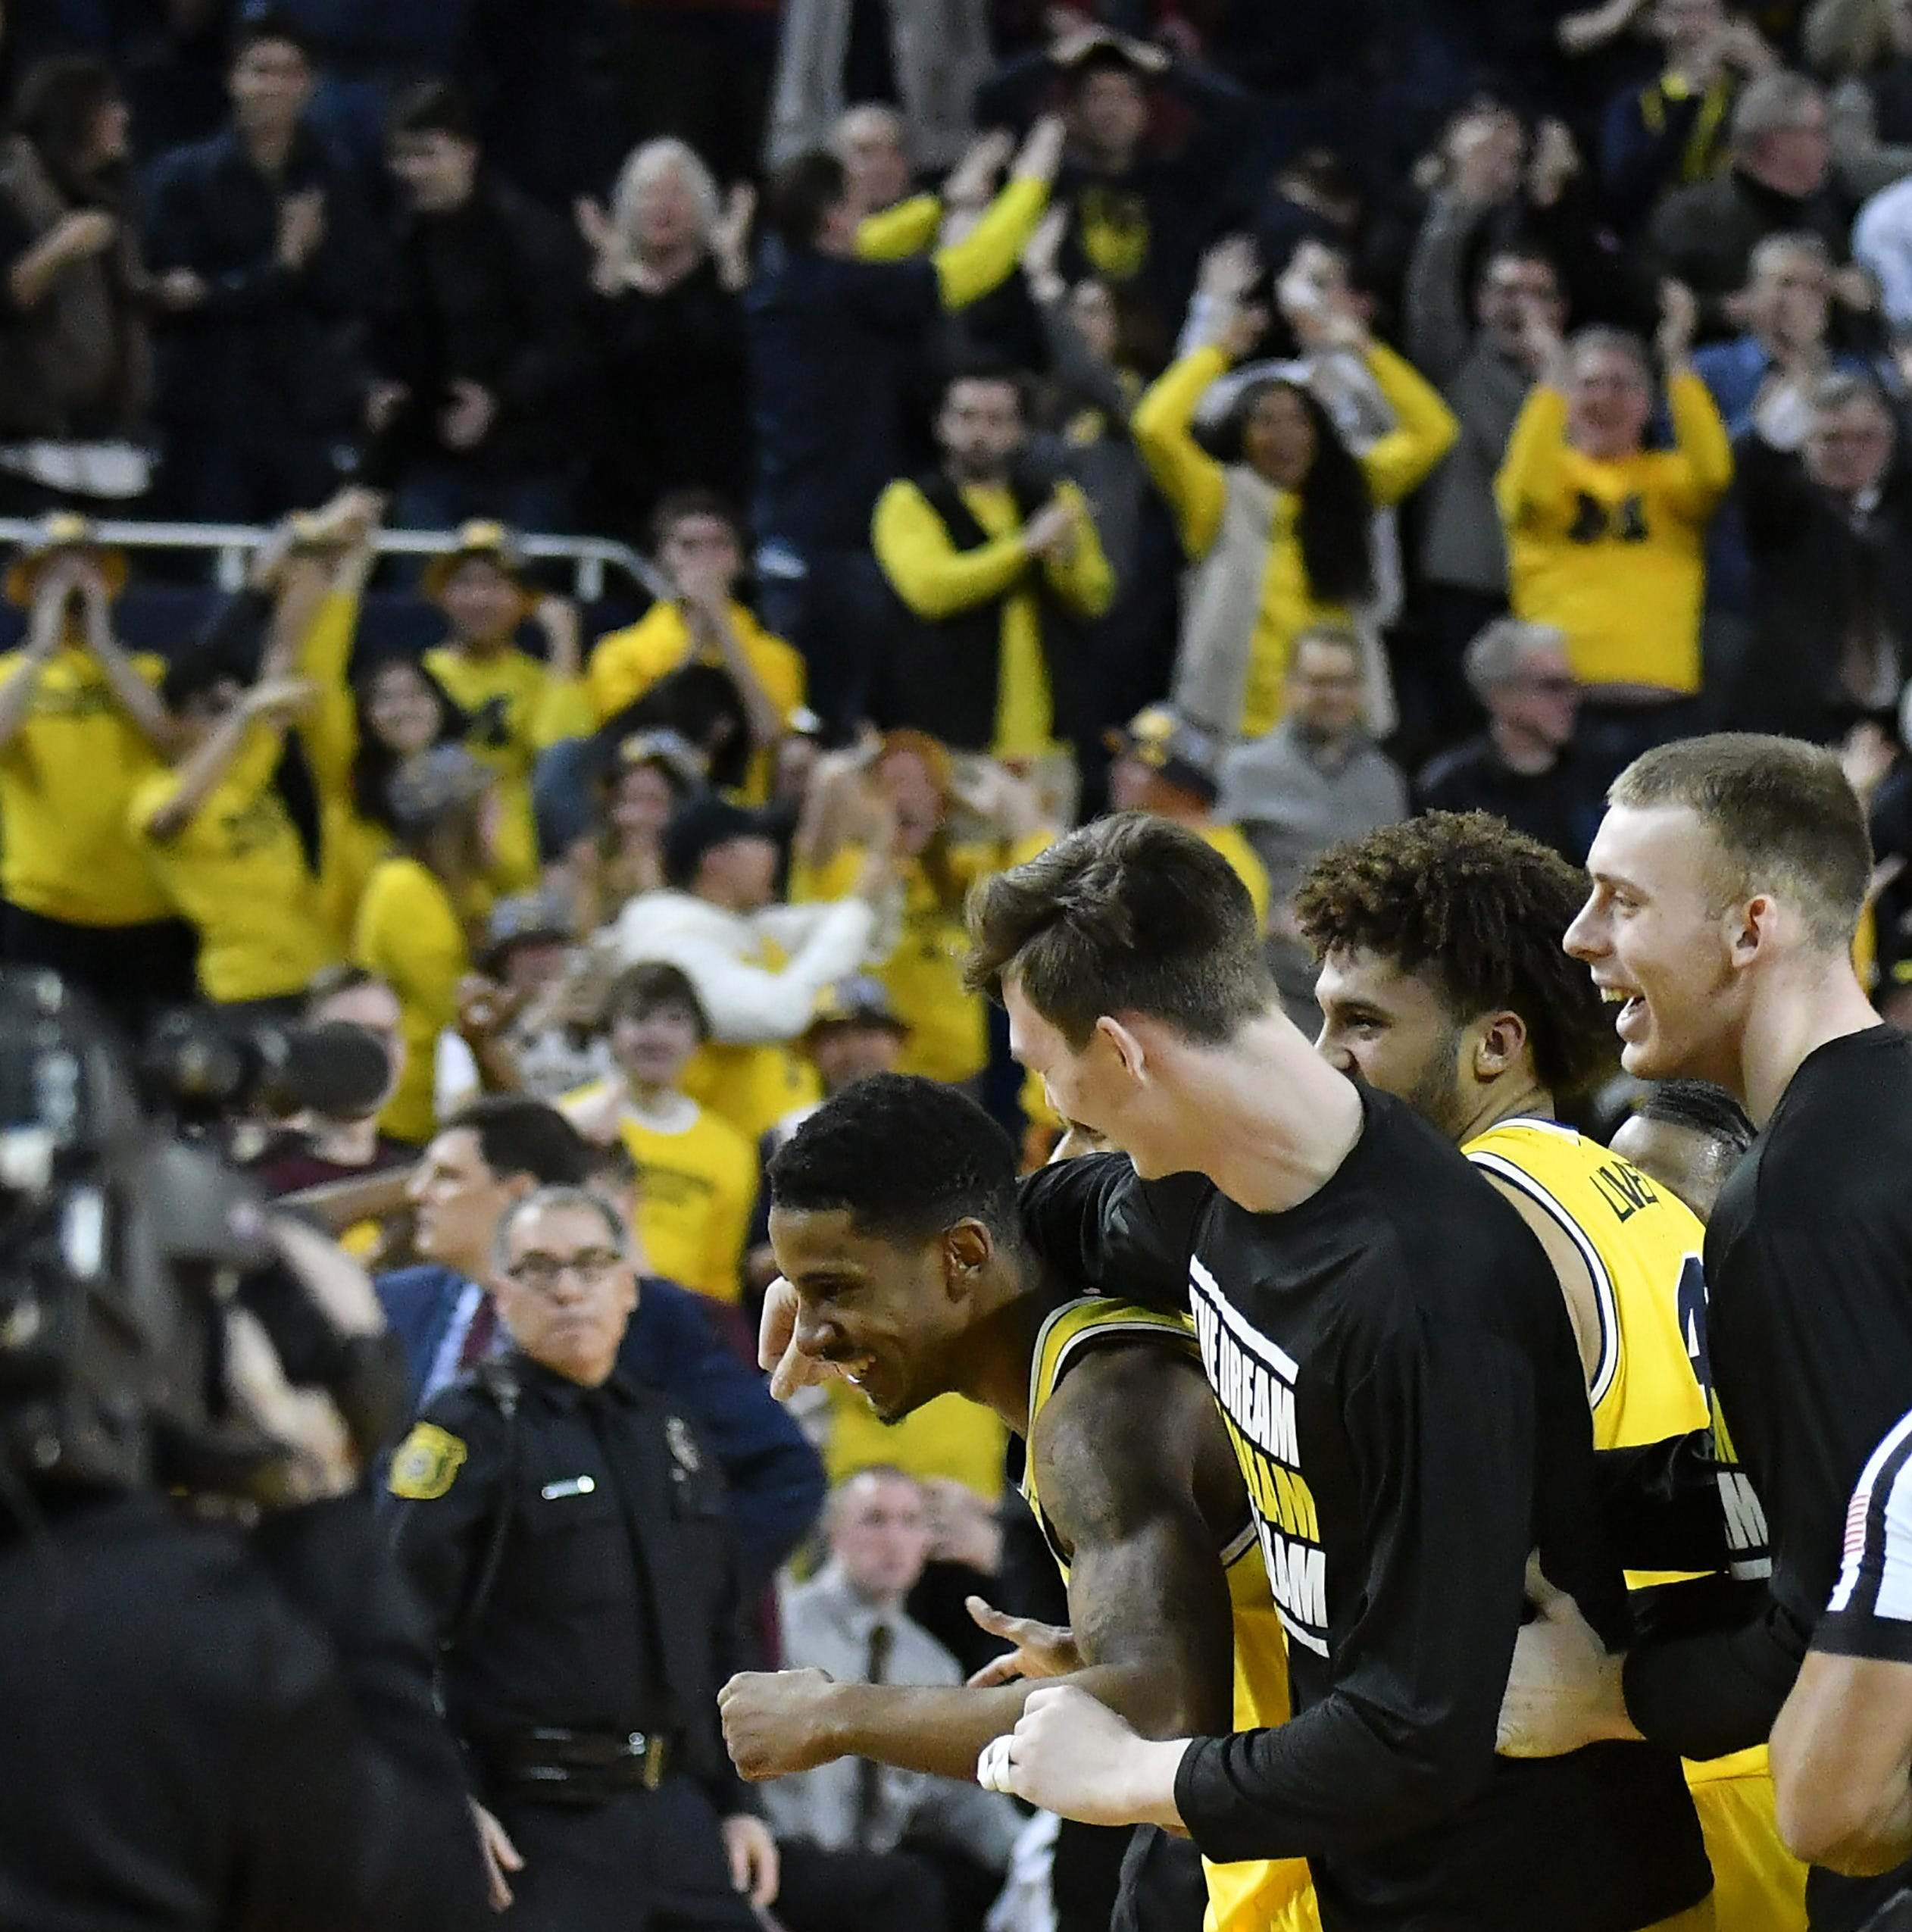 'It all worked out': Matthews' buzzer-beater saves day for Michigan in win over Minnesota